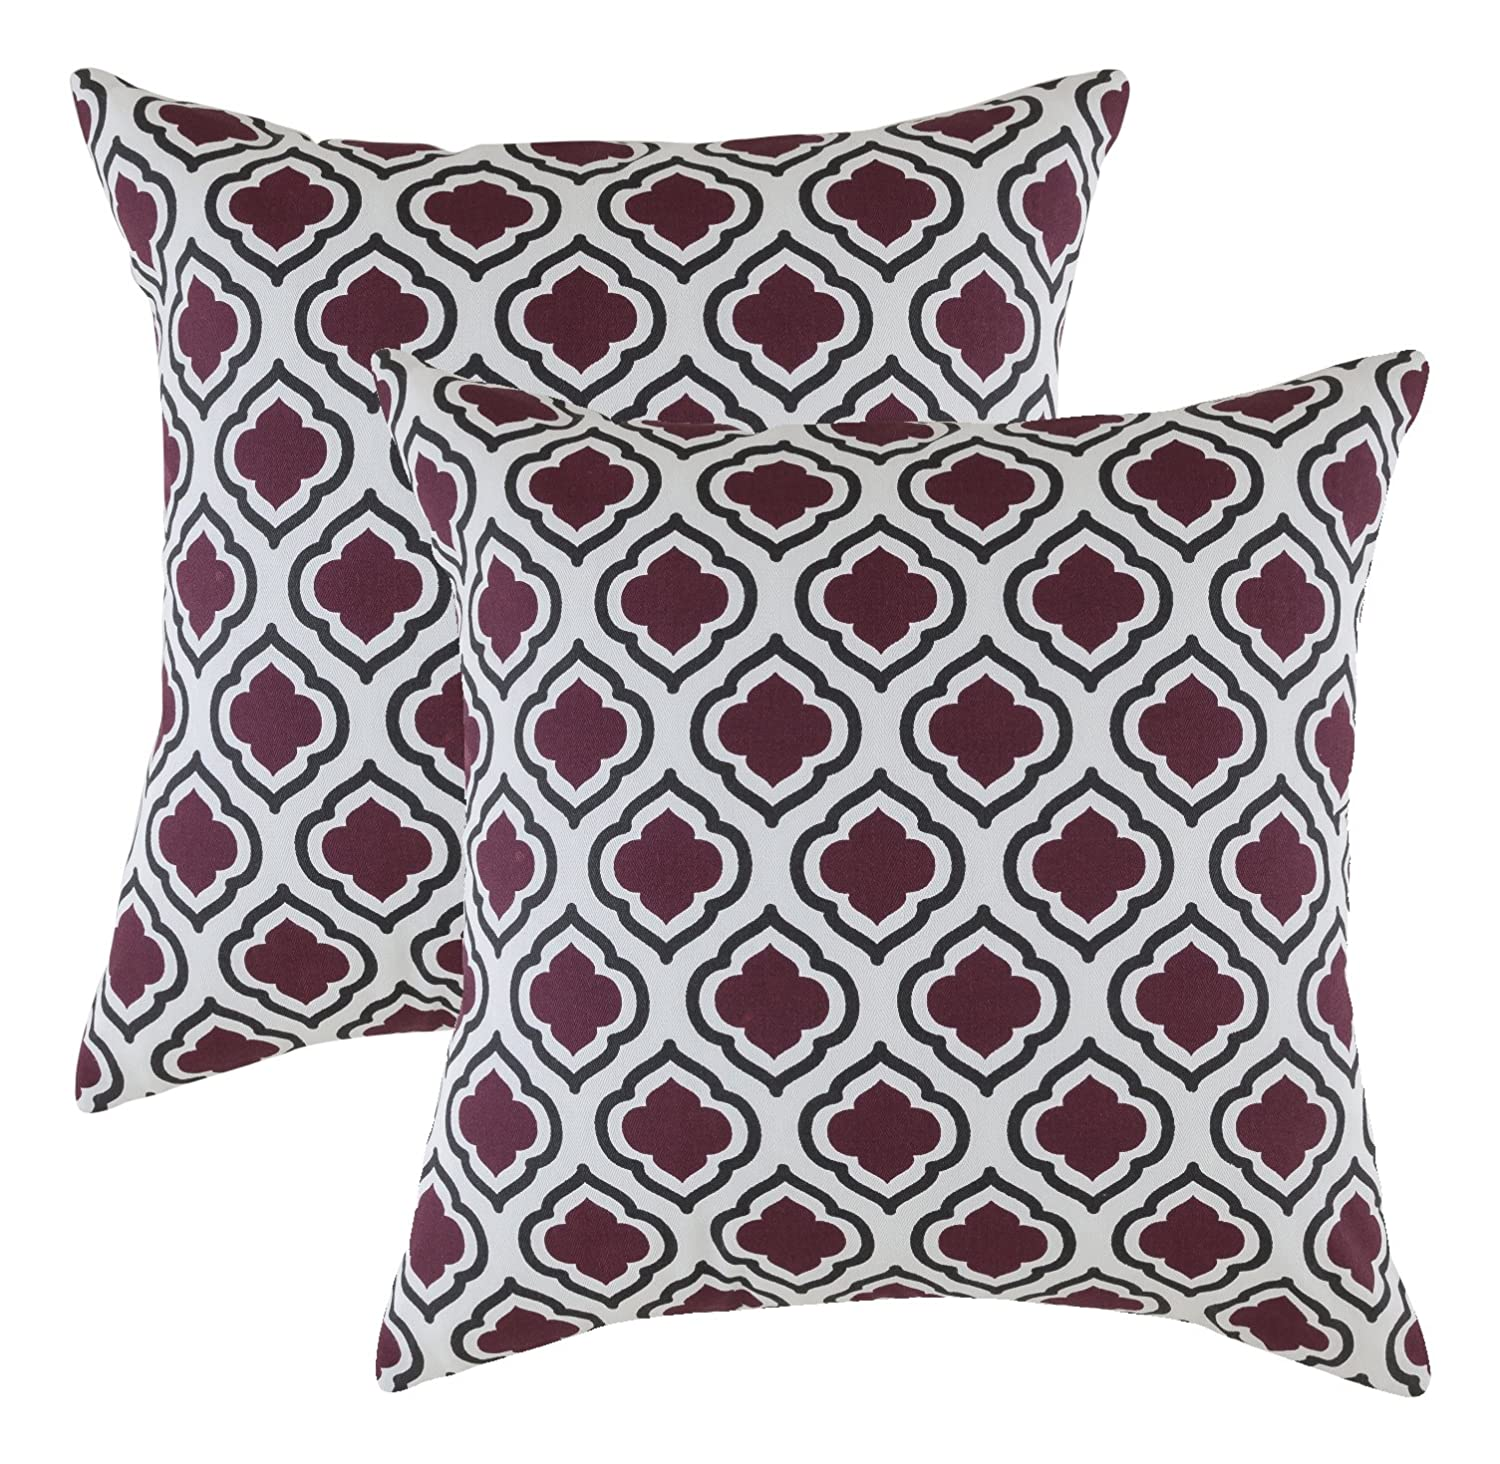 Pack of 2 COMIN18JU089008 TreeWool Decorative Square Throw Pillow Covers Set Clover Accent Soft 100/% Cotton Cushion Cases Pillowcases 18 x 18 Inches // 45 x 45 cm; Yellow /& Black in Cream Background